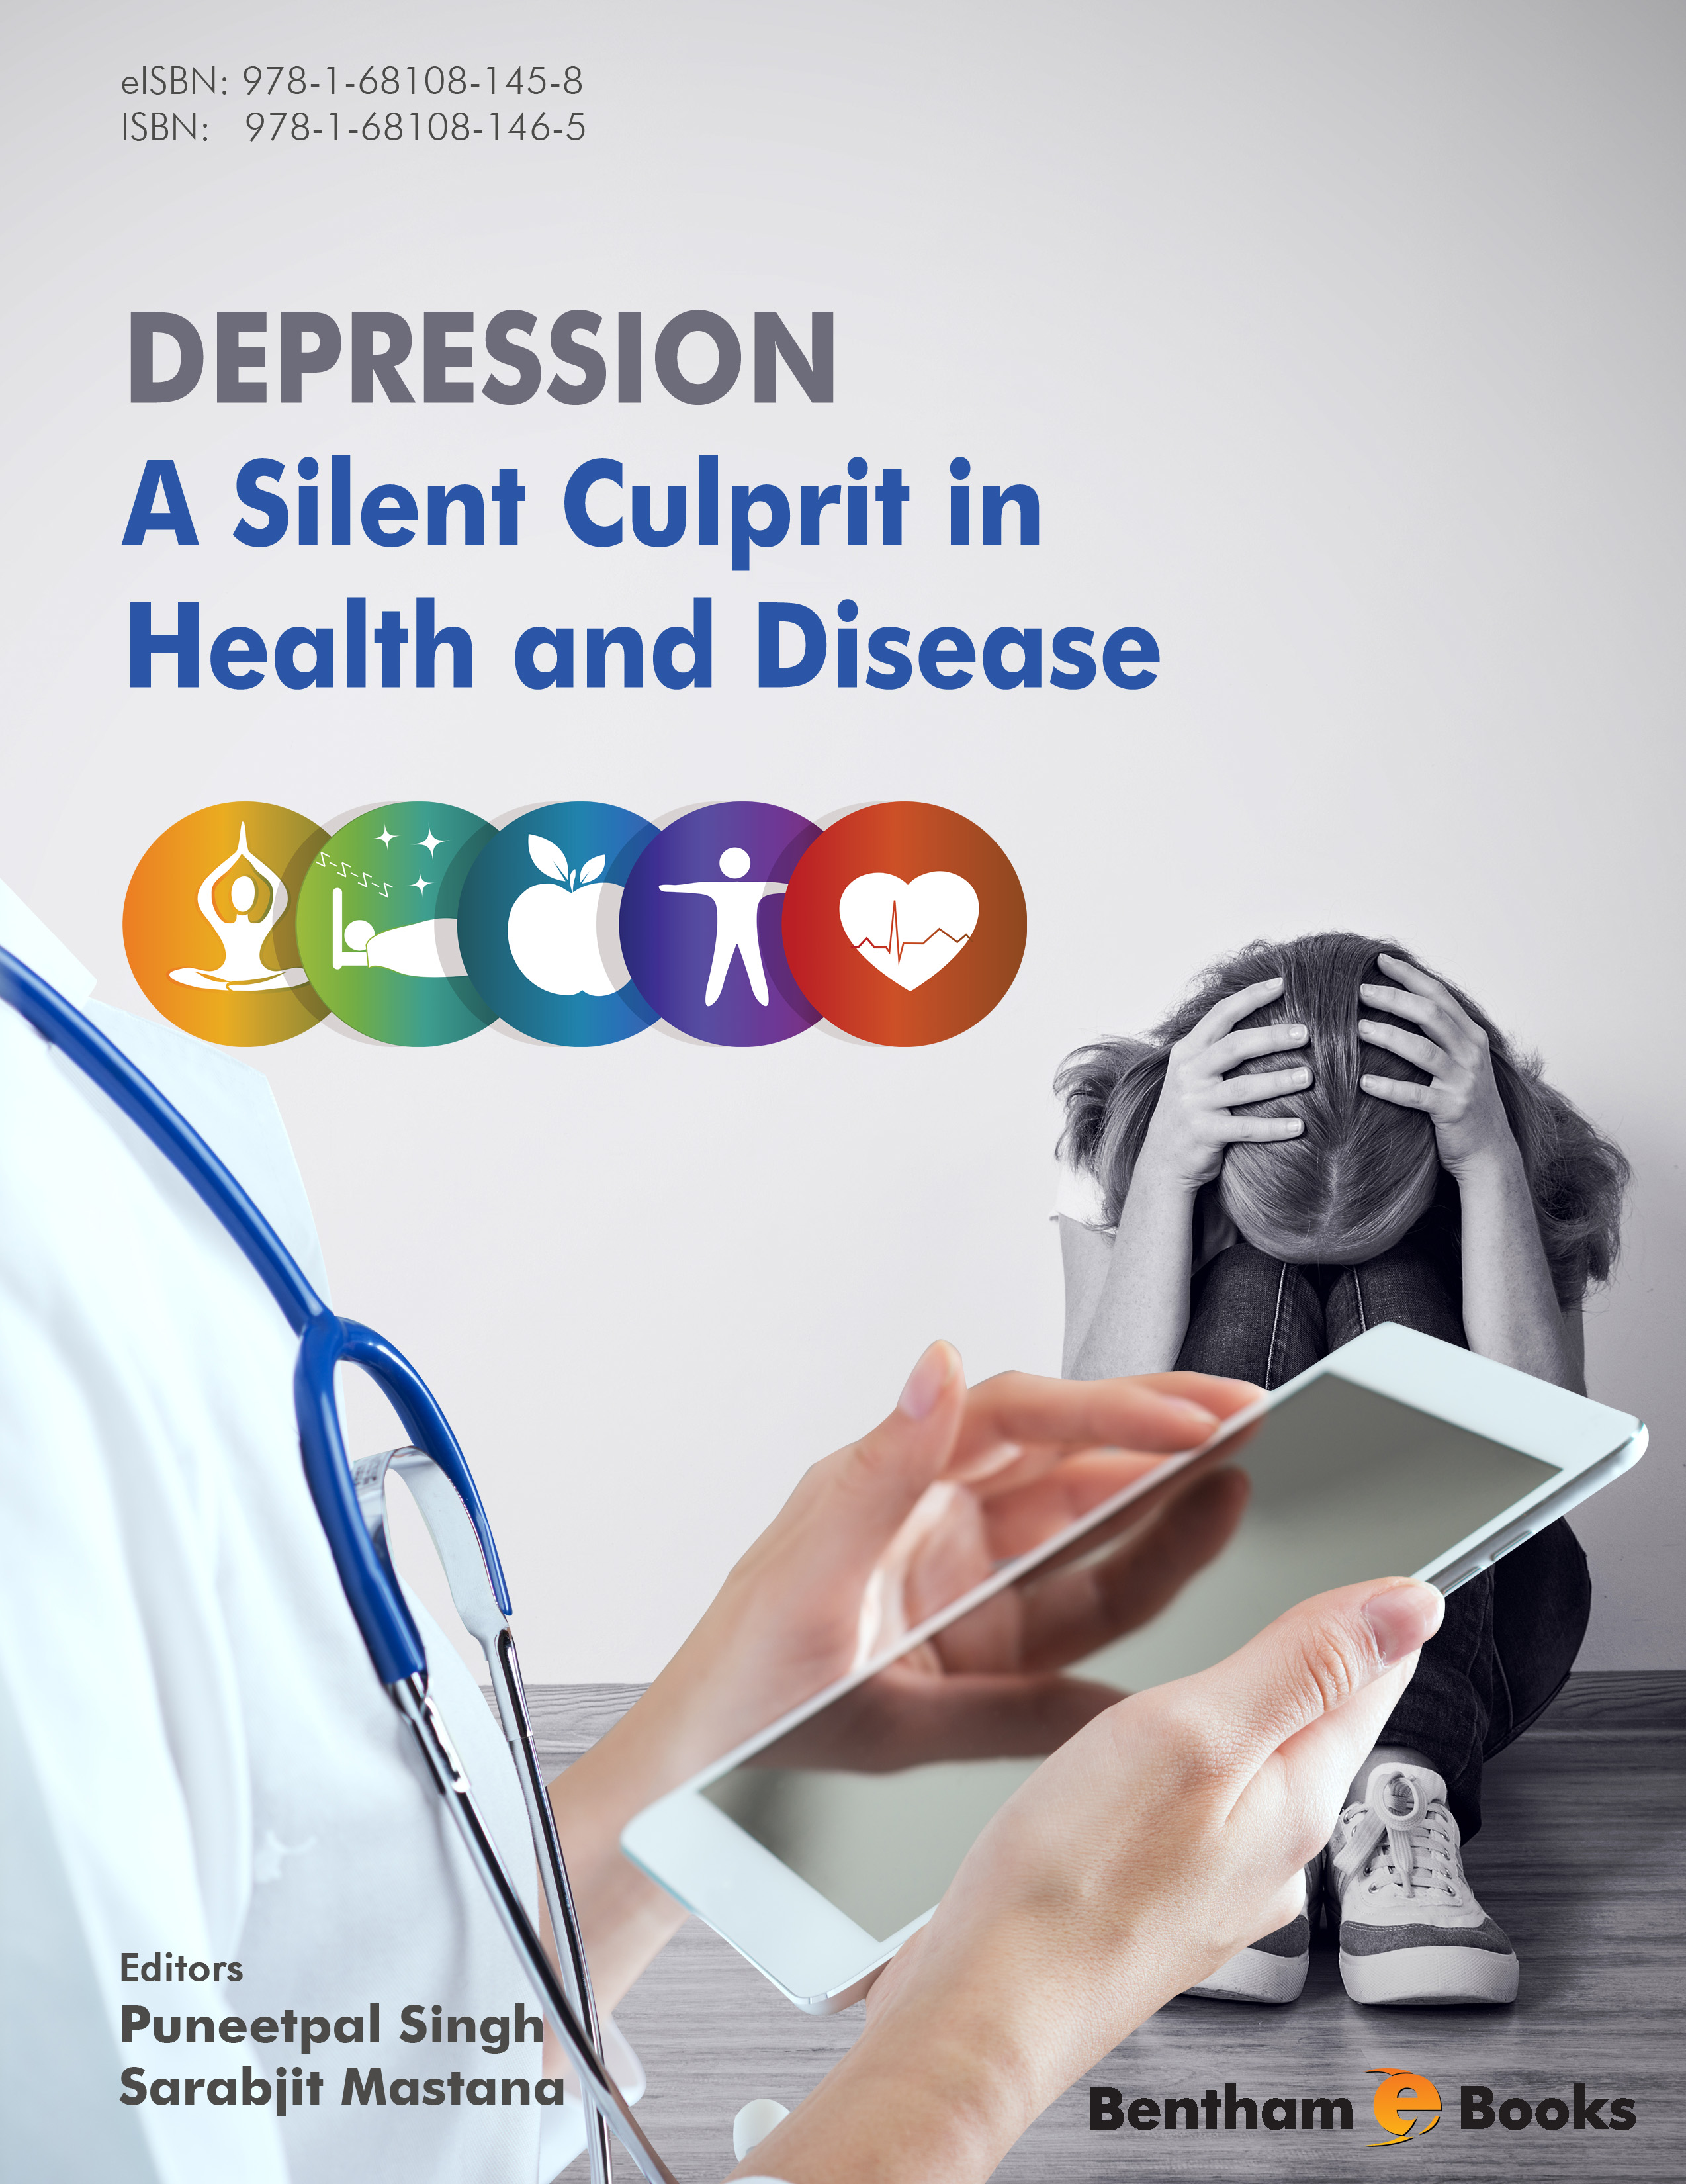 Depression: A Silent Culprit in Health and Disease